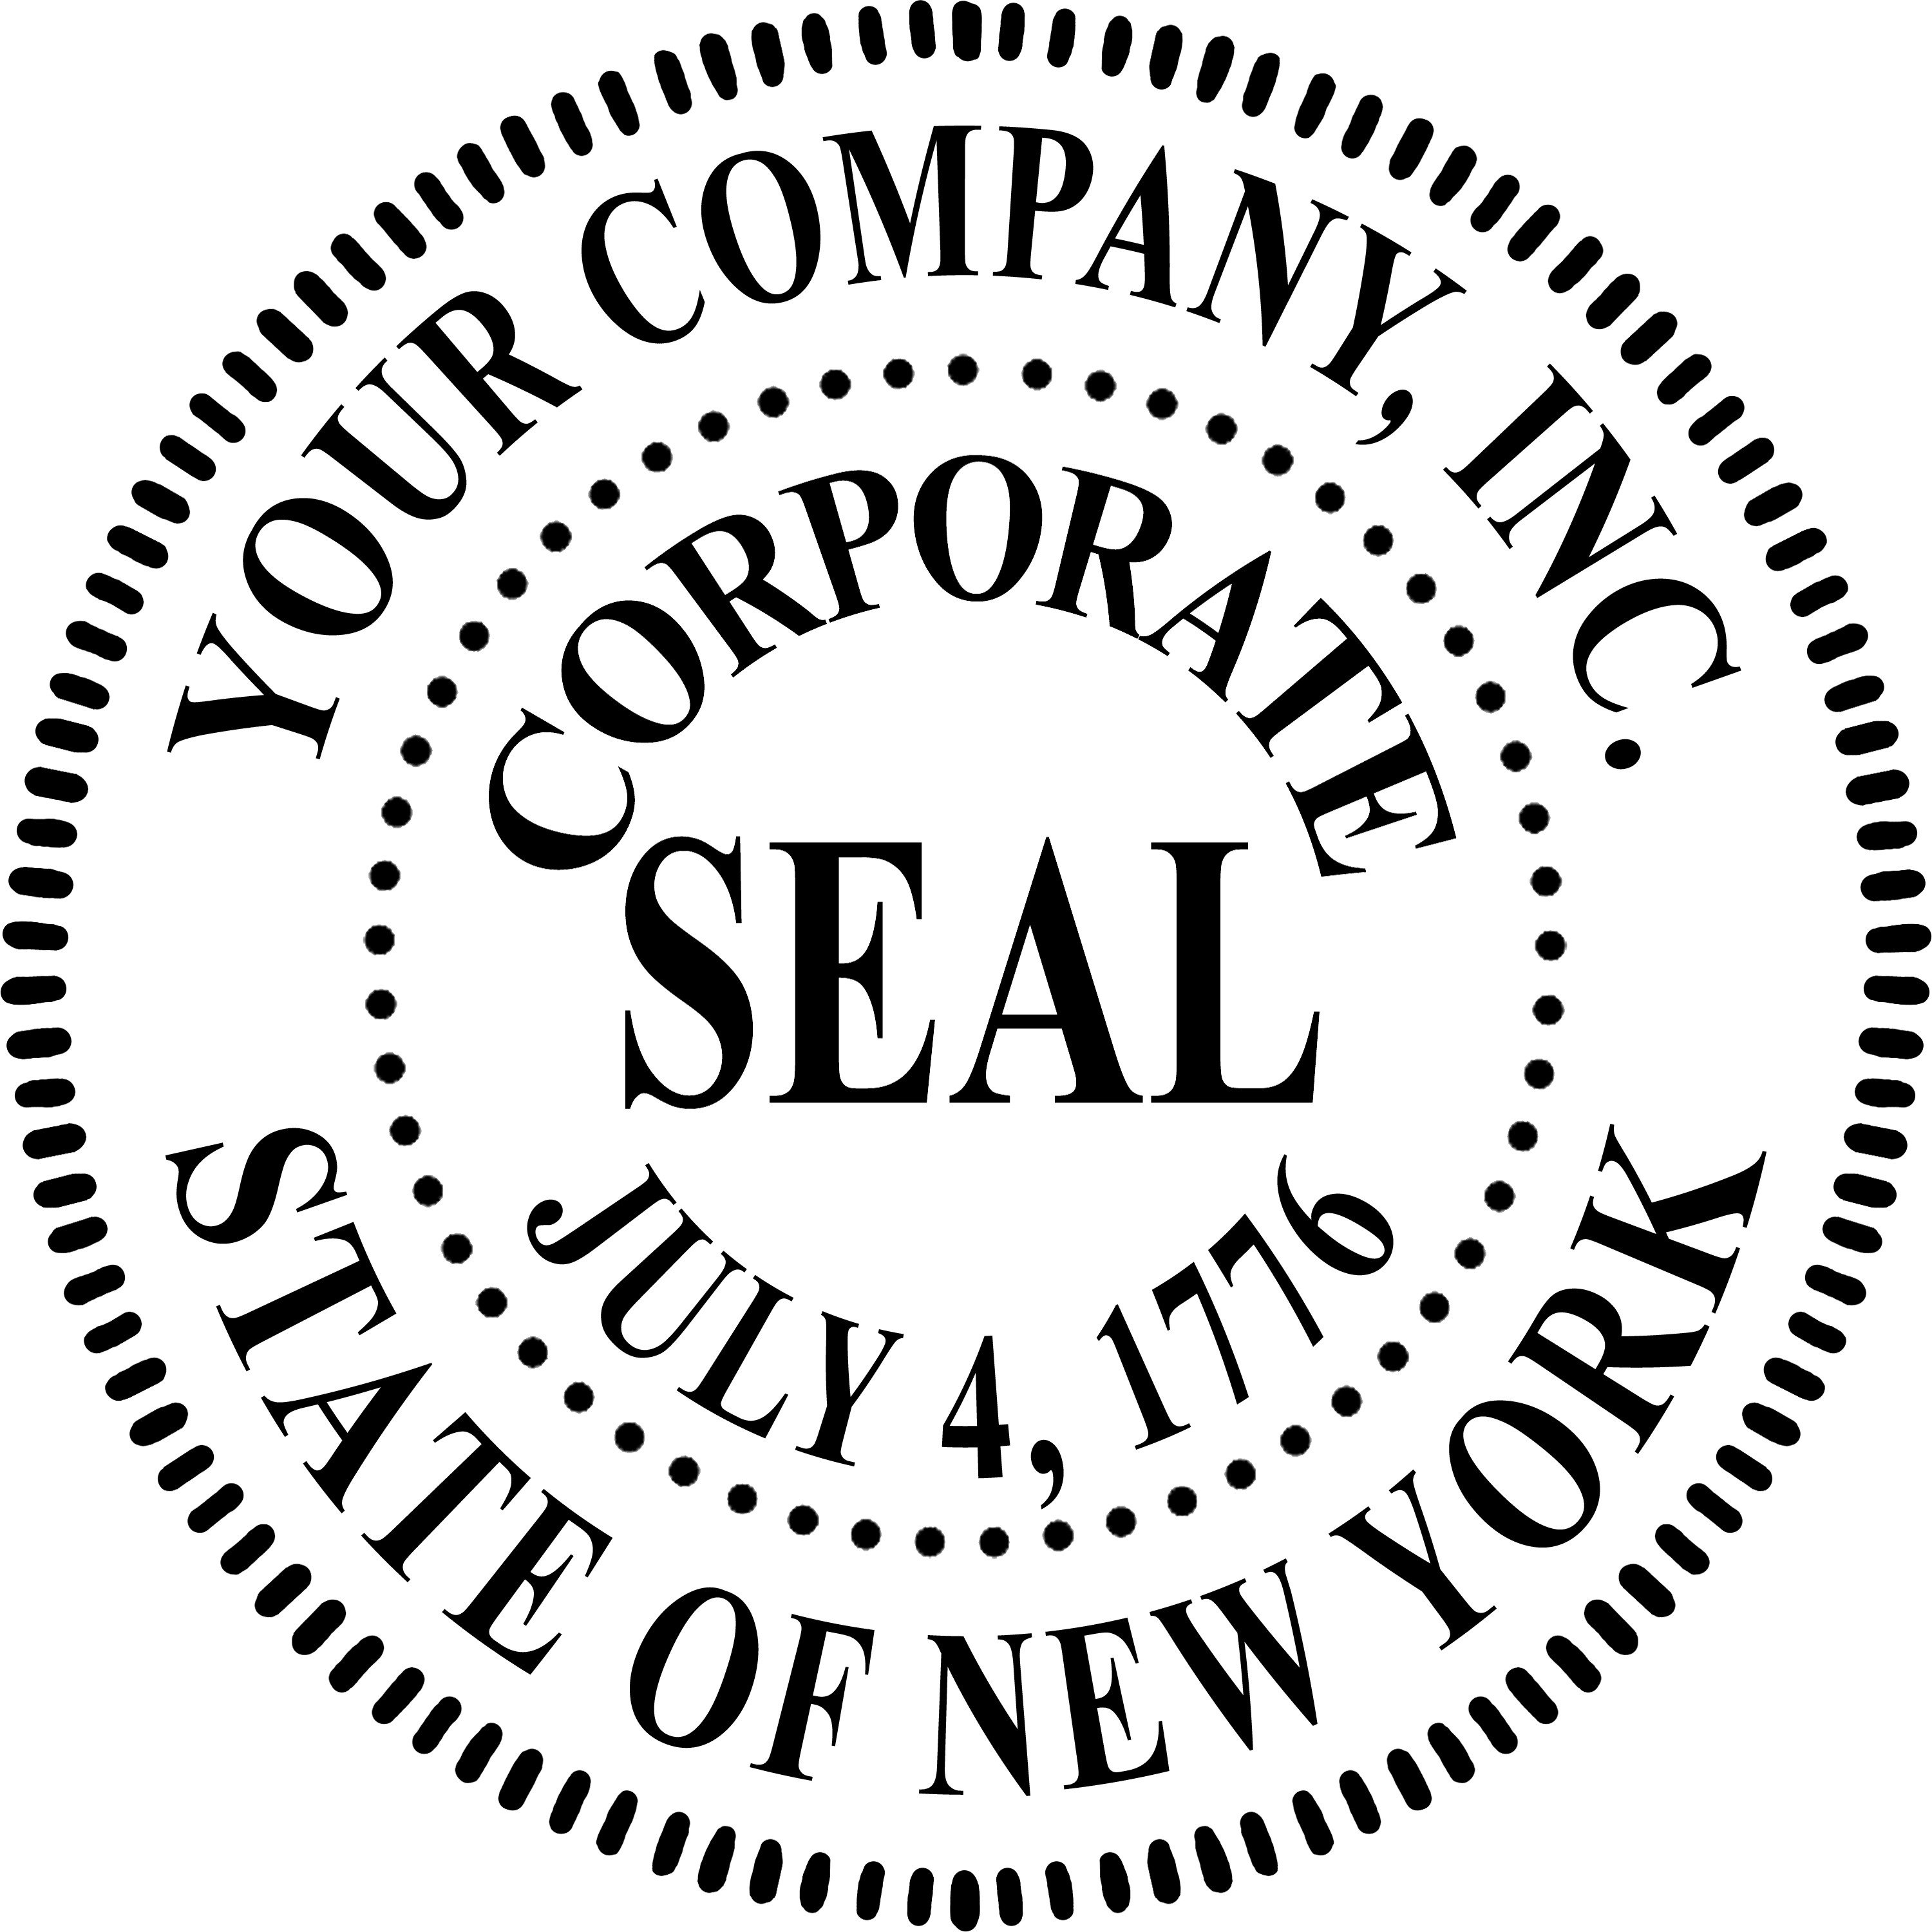 Corporate Seal Template Word Corporation Setup & Dissolution R&g Brenner